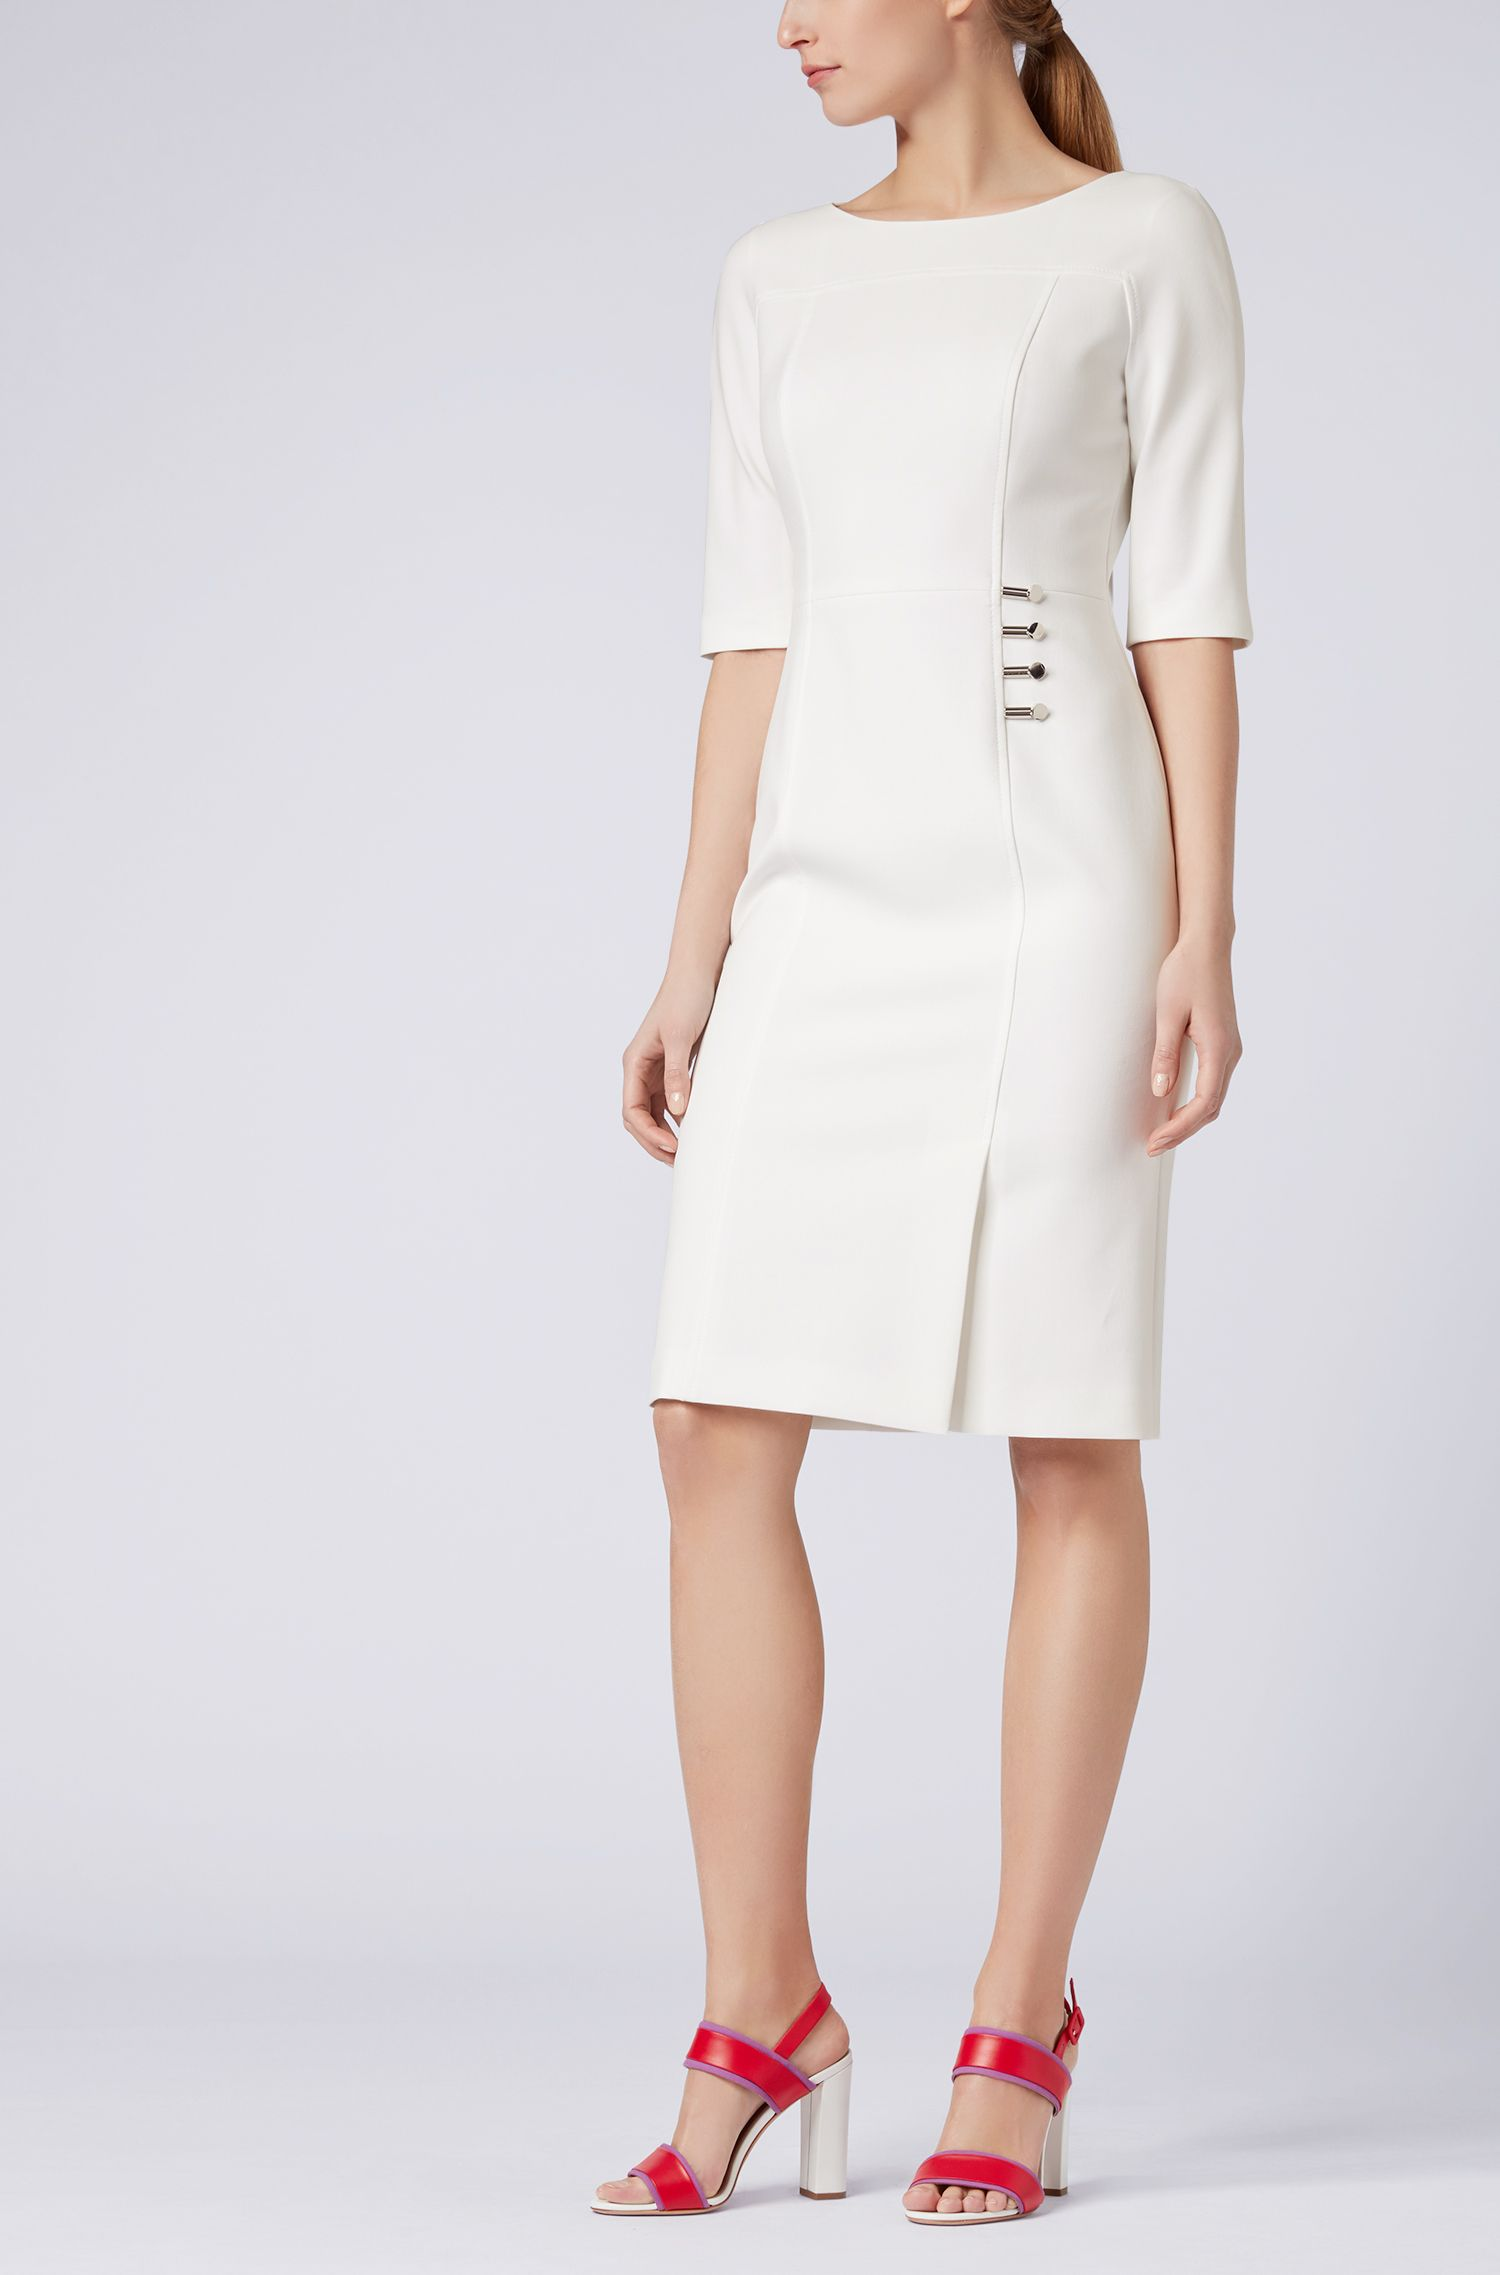 Hugo Boss - Three-quarter-sleeve dress with button detailing - 2